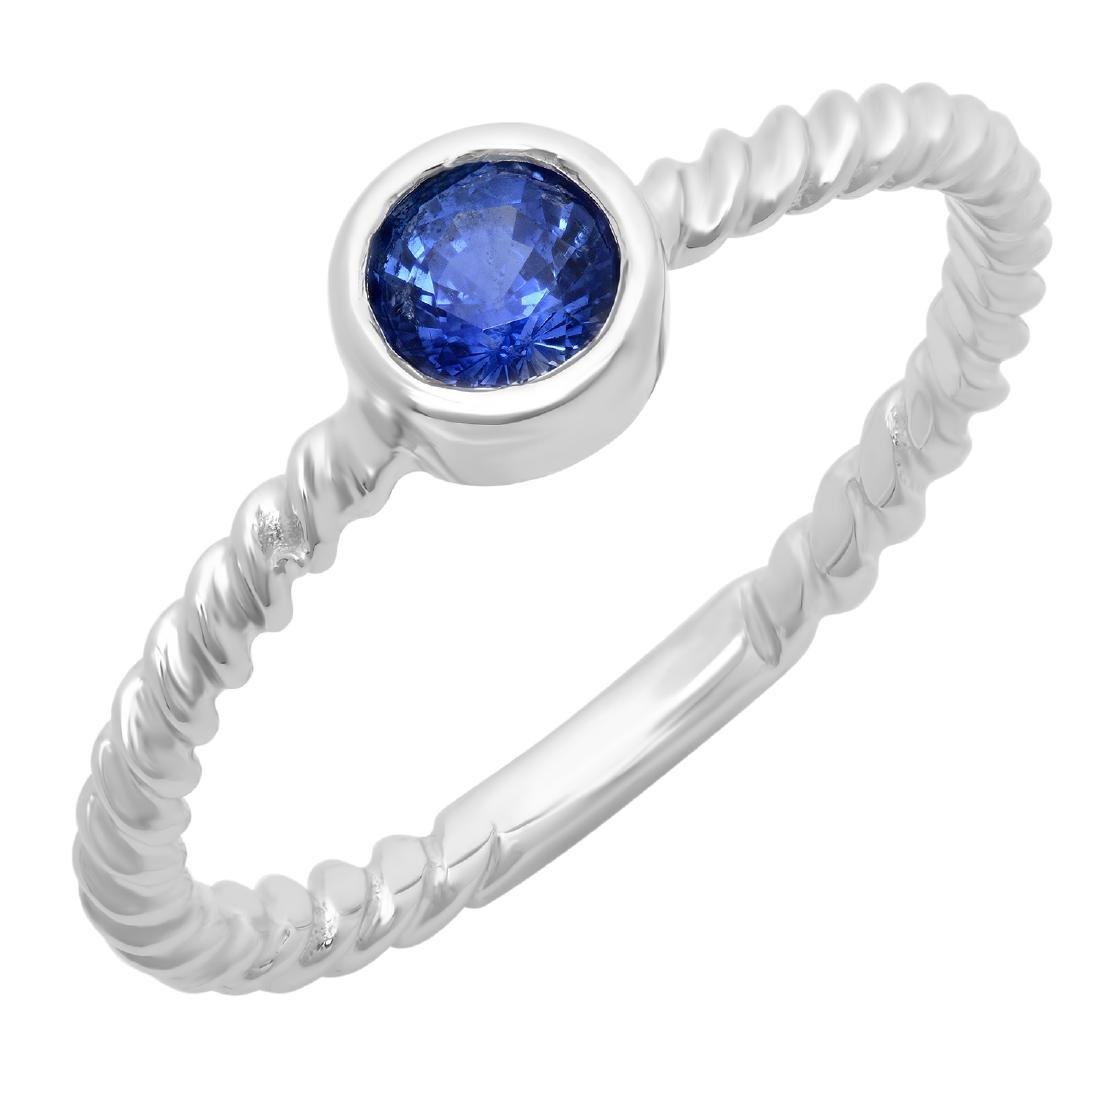 0.46 Carat Natural Sapphire 18K Solid White Gold Ring